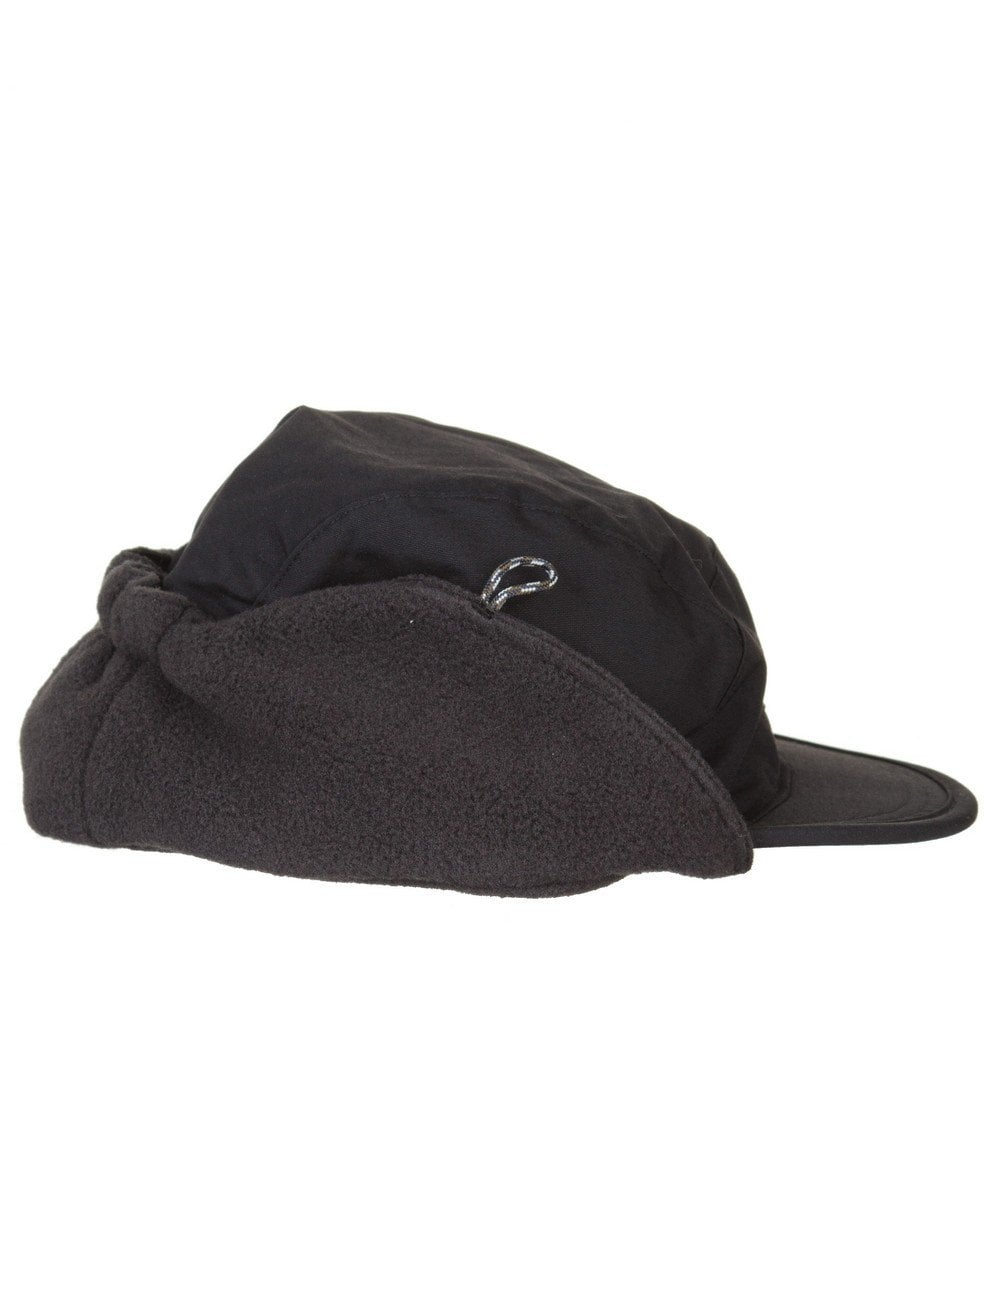 021e06ecf84 Patagonia Shelled Synchilla Duckbill Cap - Black - Accessories from ...